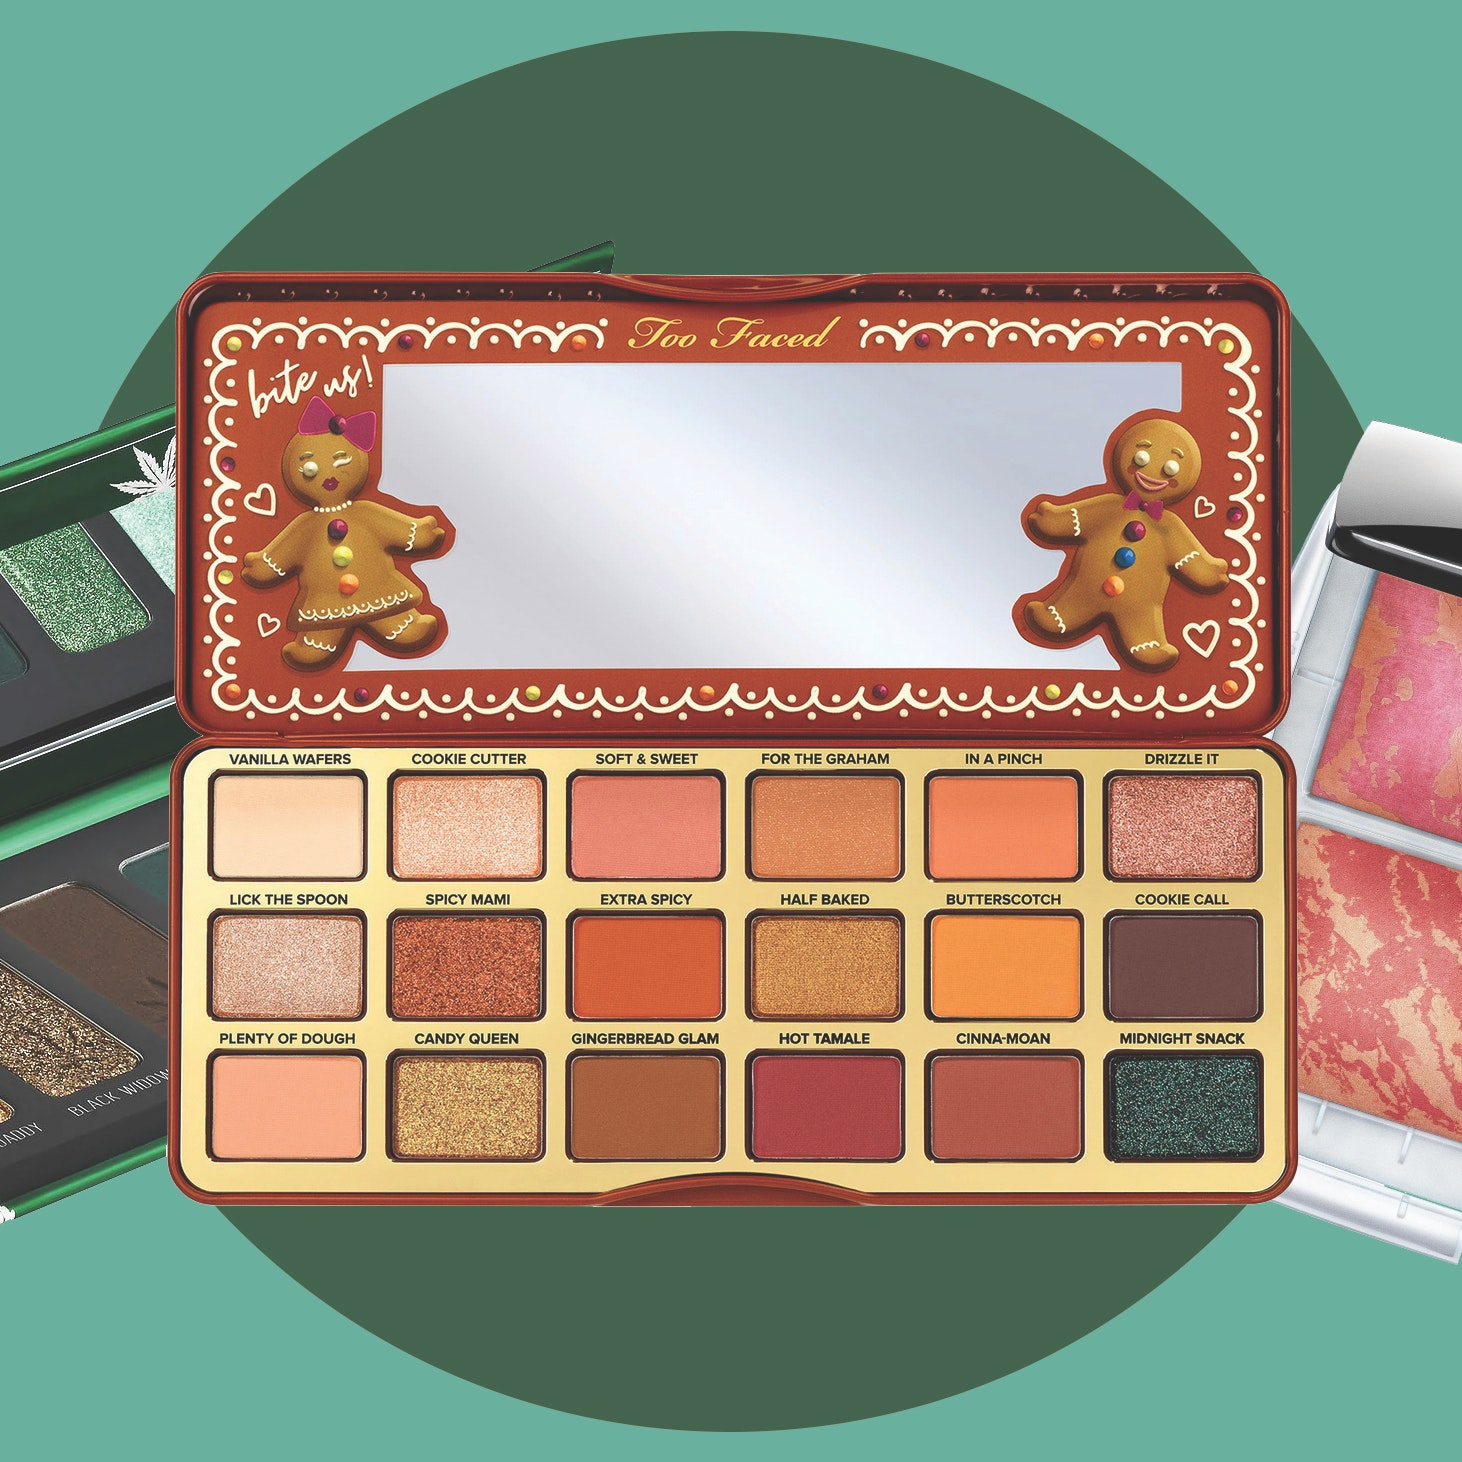 Our Editors Reveal the Top Makeup Palettes They're Coveting This Holiday Season